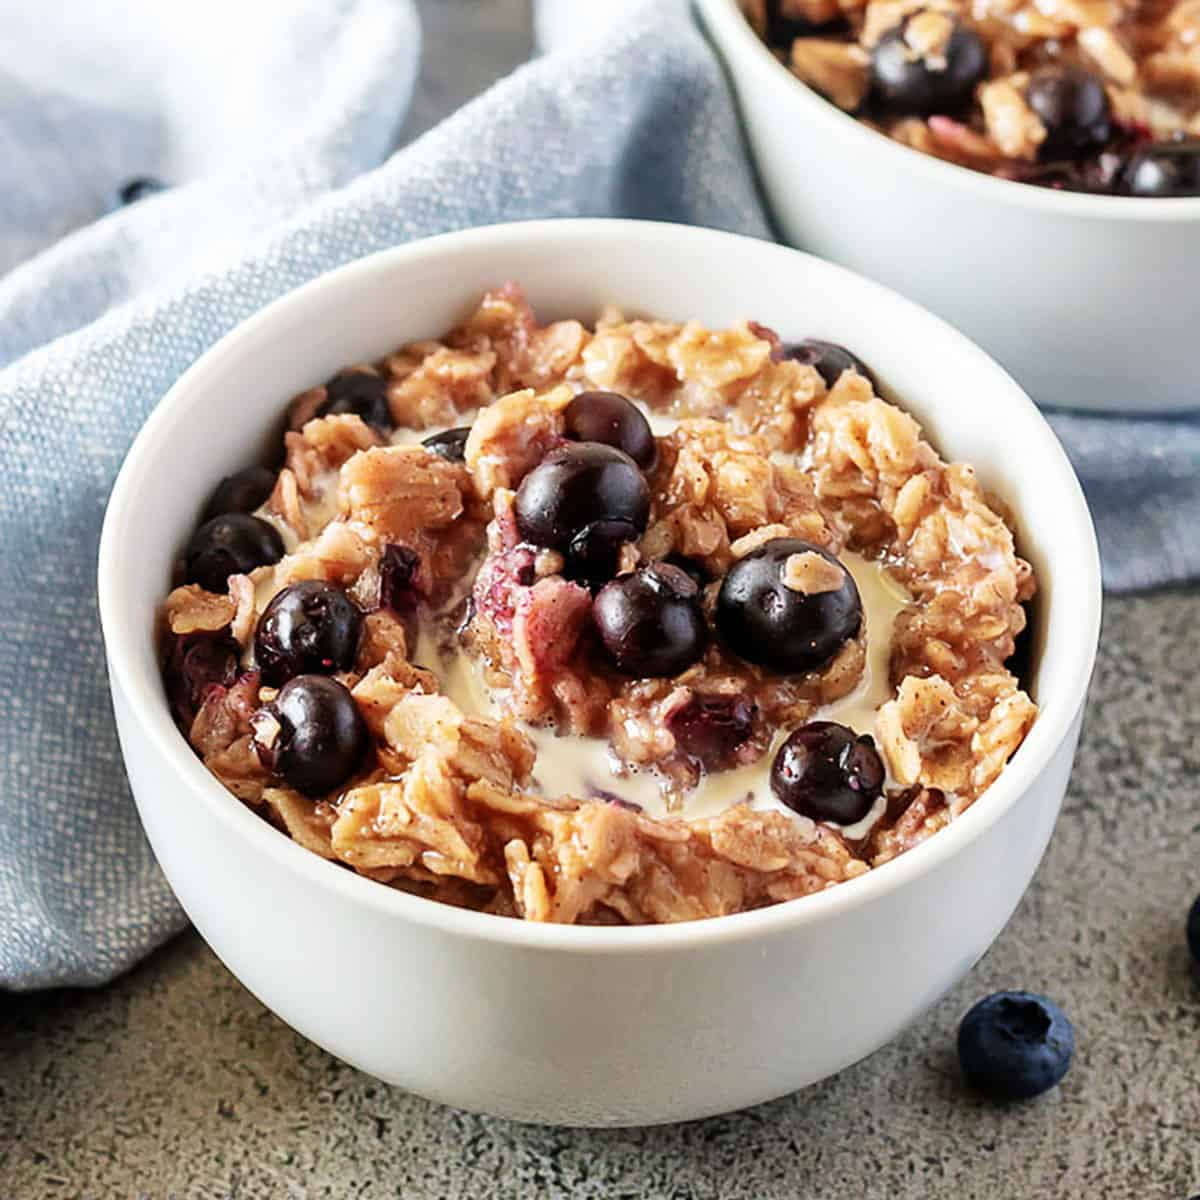 Two bowls of blueberry oatmeal topped with fresh blueberries.